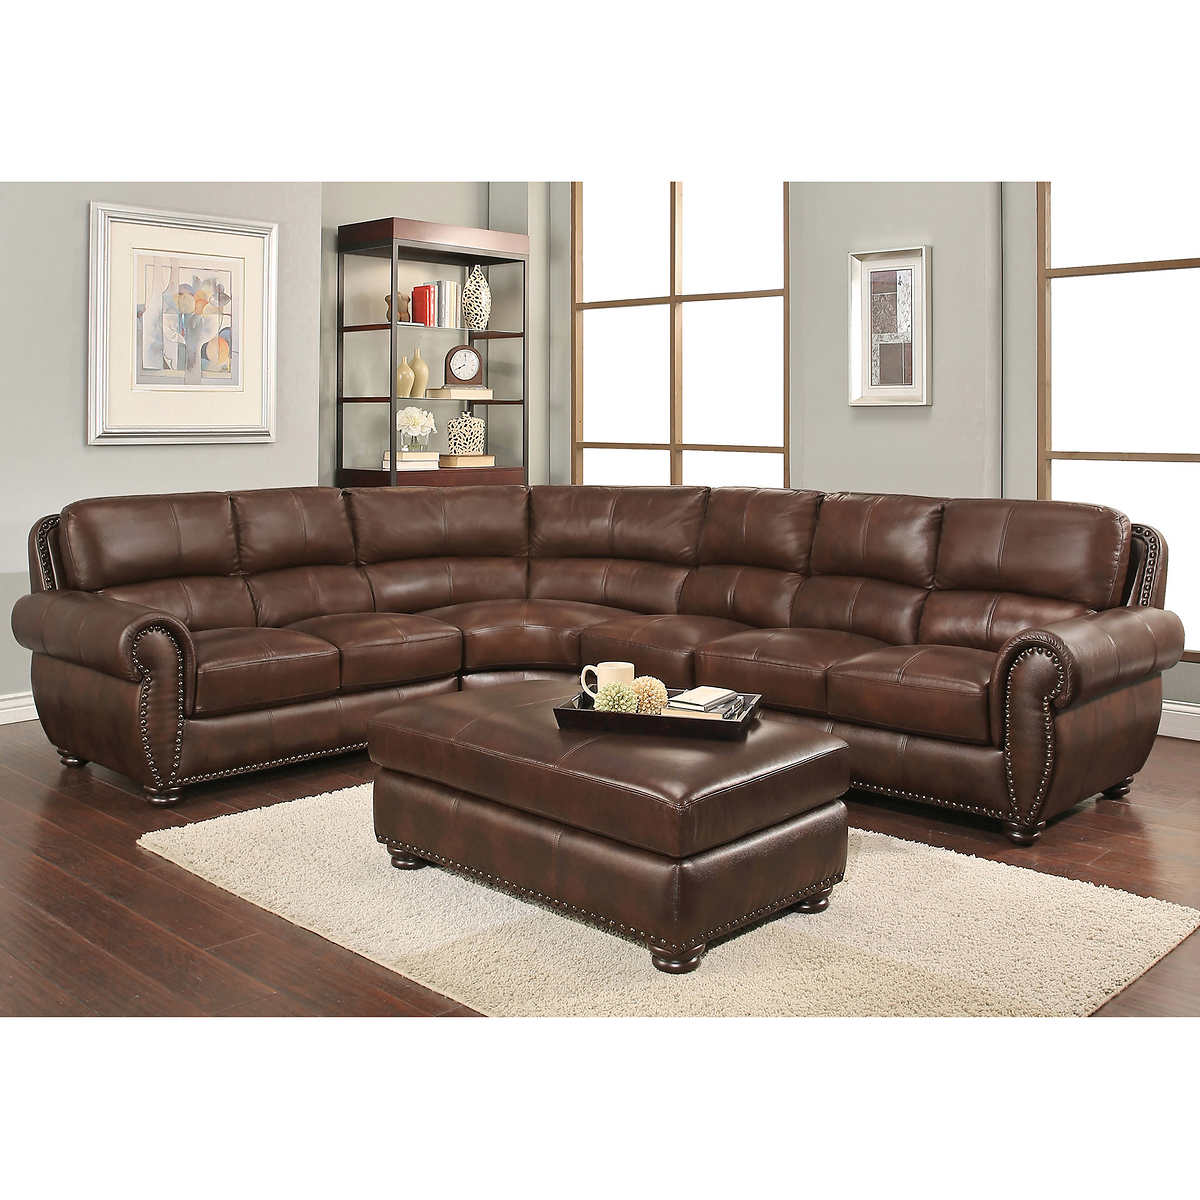 Austin Top Grain Leather Sectional With Ottoman - Leather Sofas & Sectionals Costco